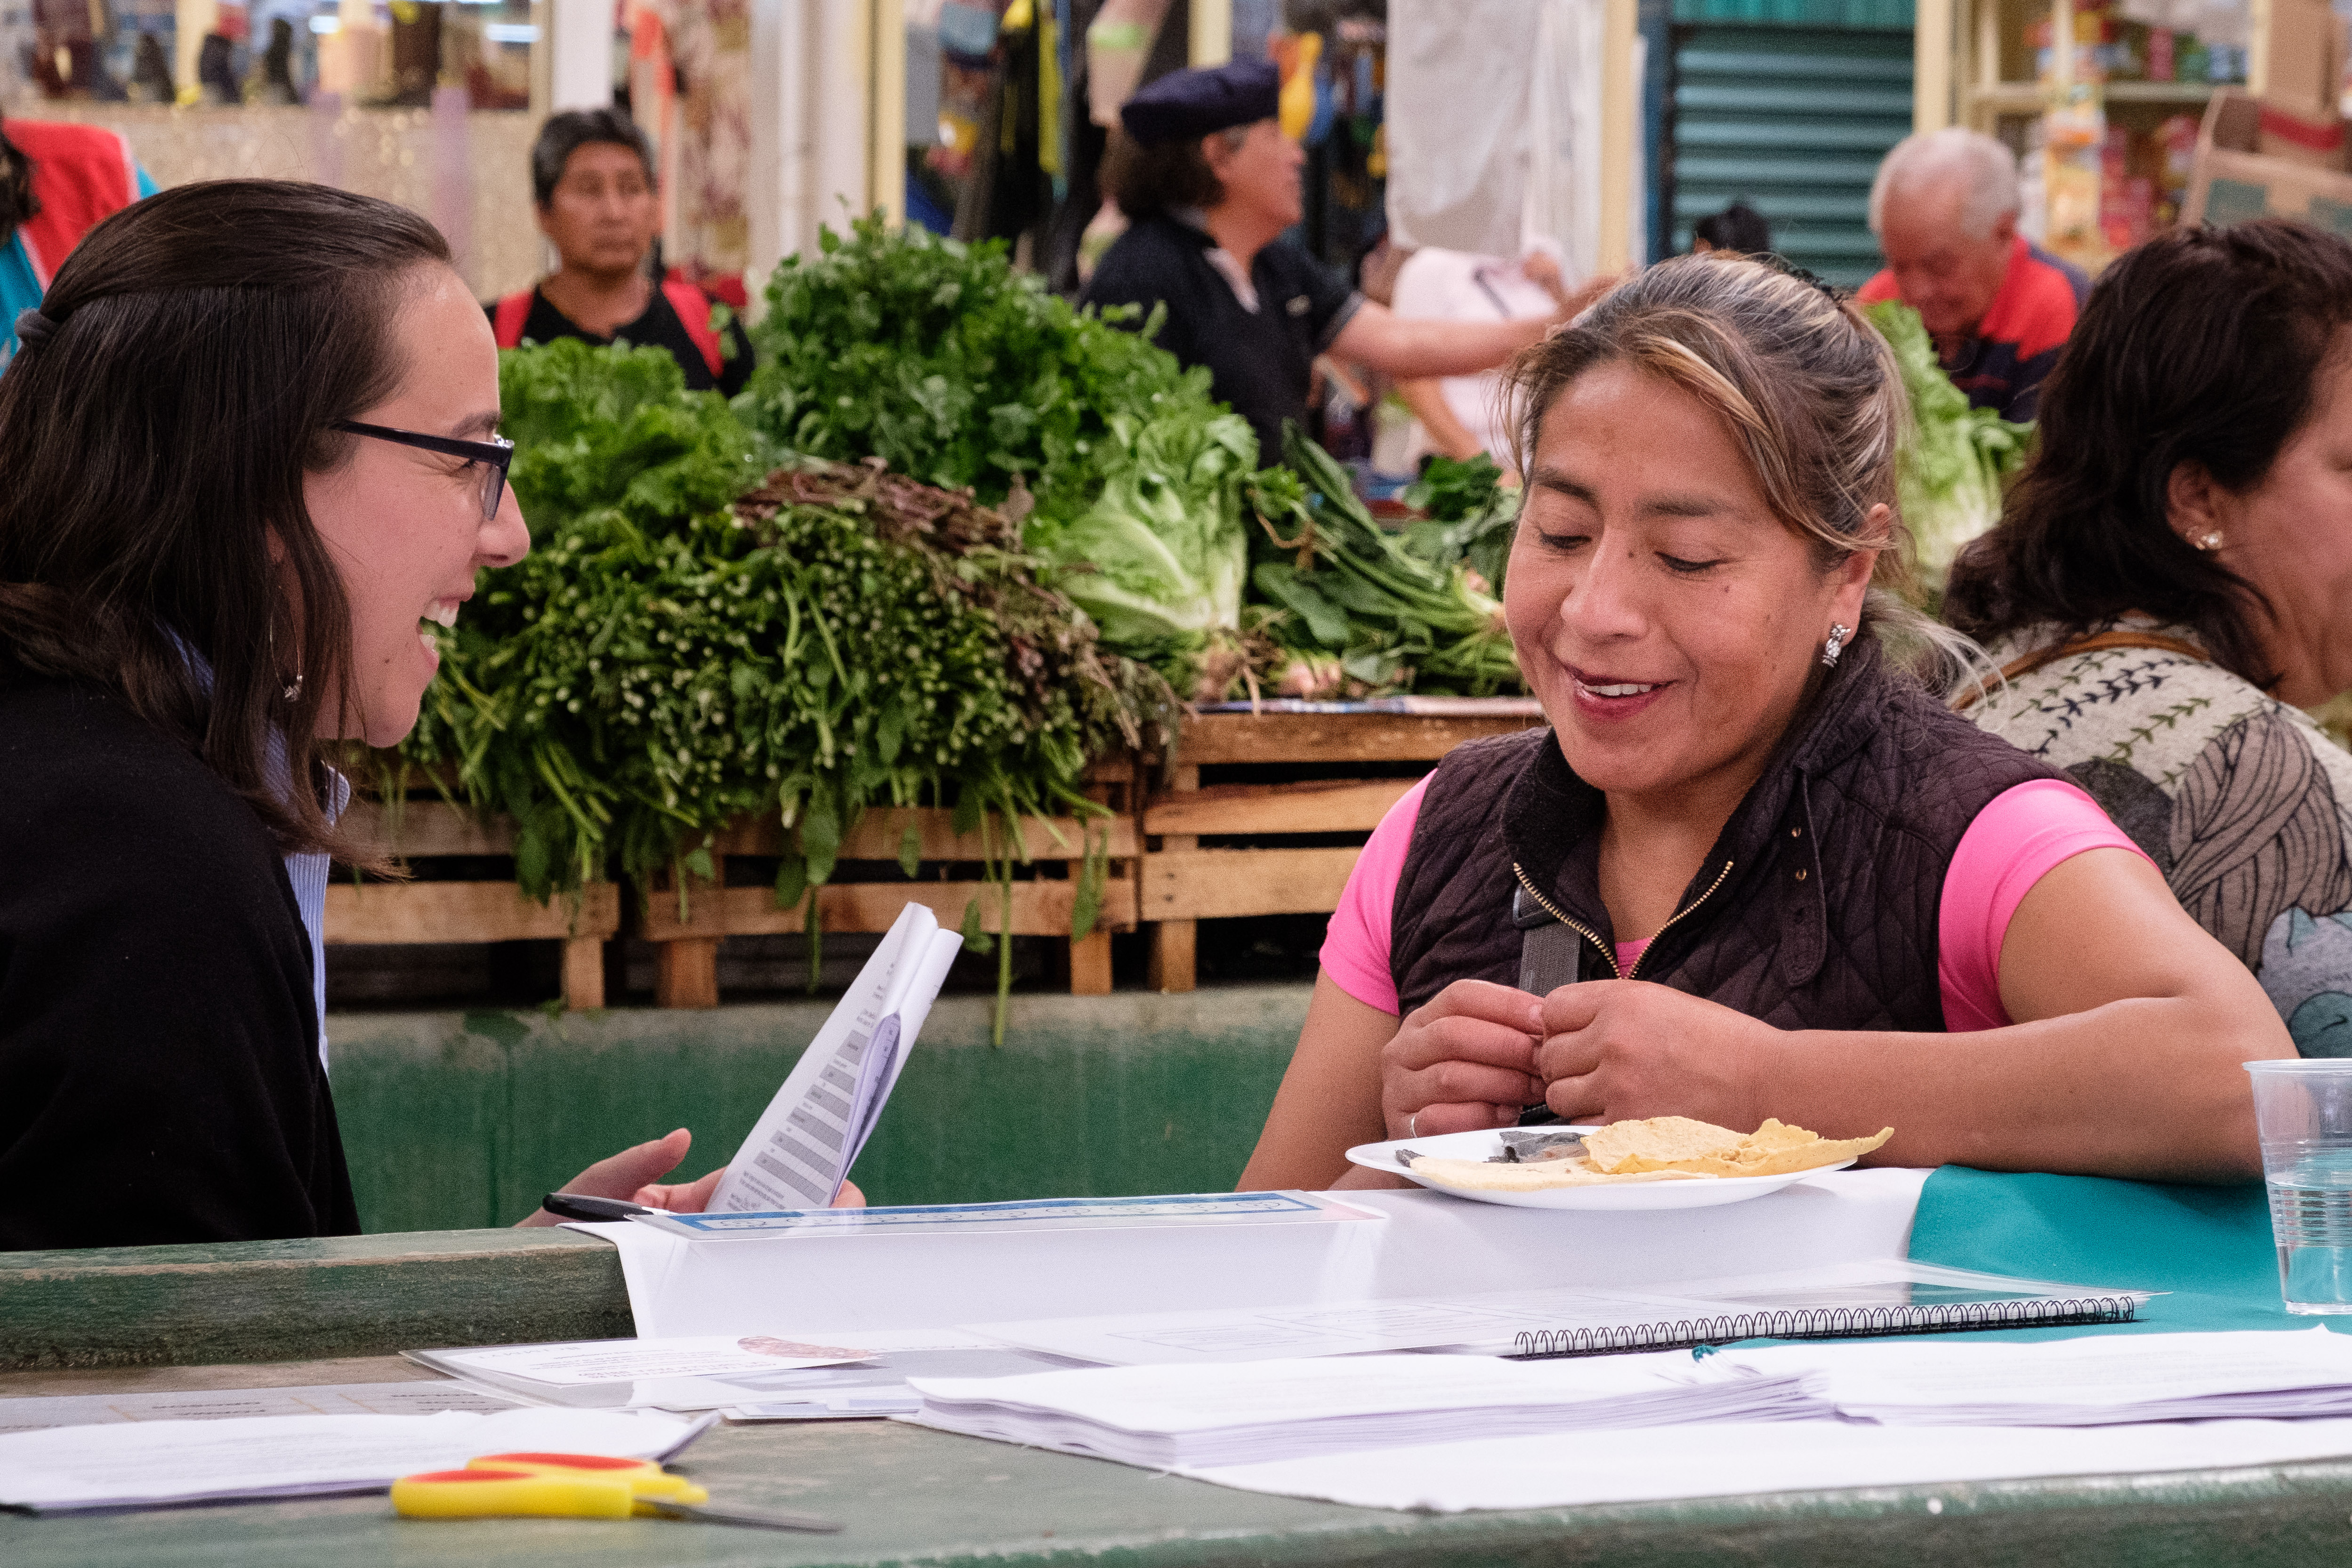 """As a Colombian, it really surprised me that Mexicans were able to distinguish between white and blue maize tortillas even when blindfolded! It really shows the importance of maize to their diet and culture,"" said Diana Ospina Rojas (left), research assistant and interviewer. (Photo: Carolyn Cowan/CIMMYT)"